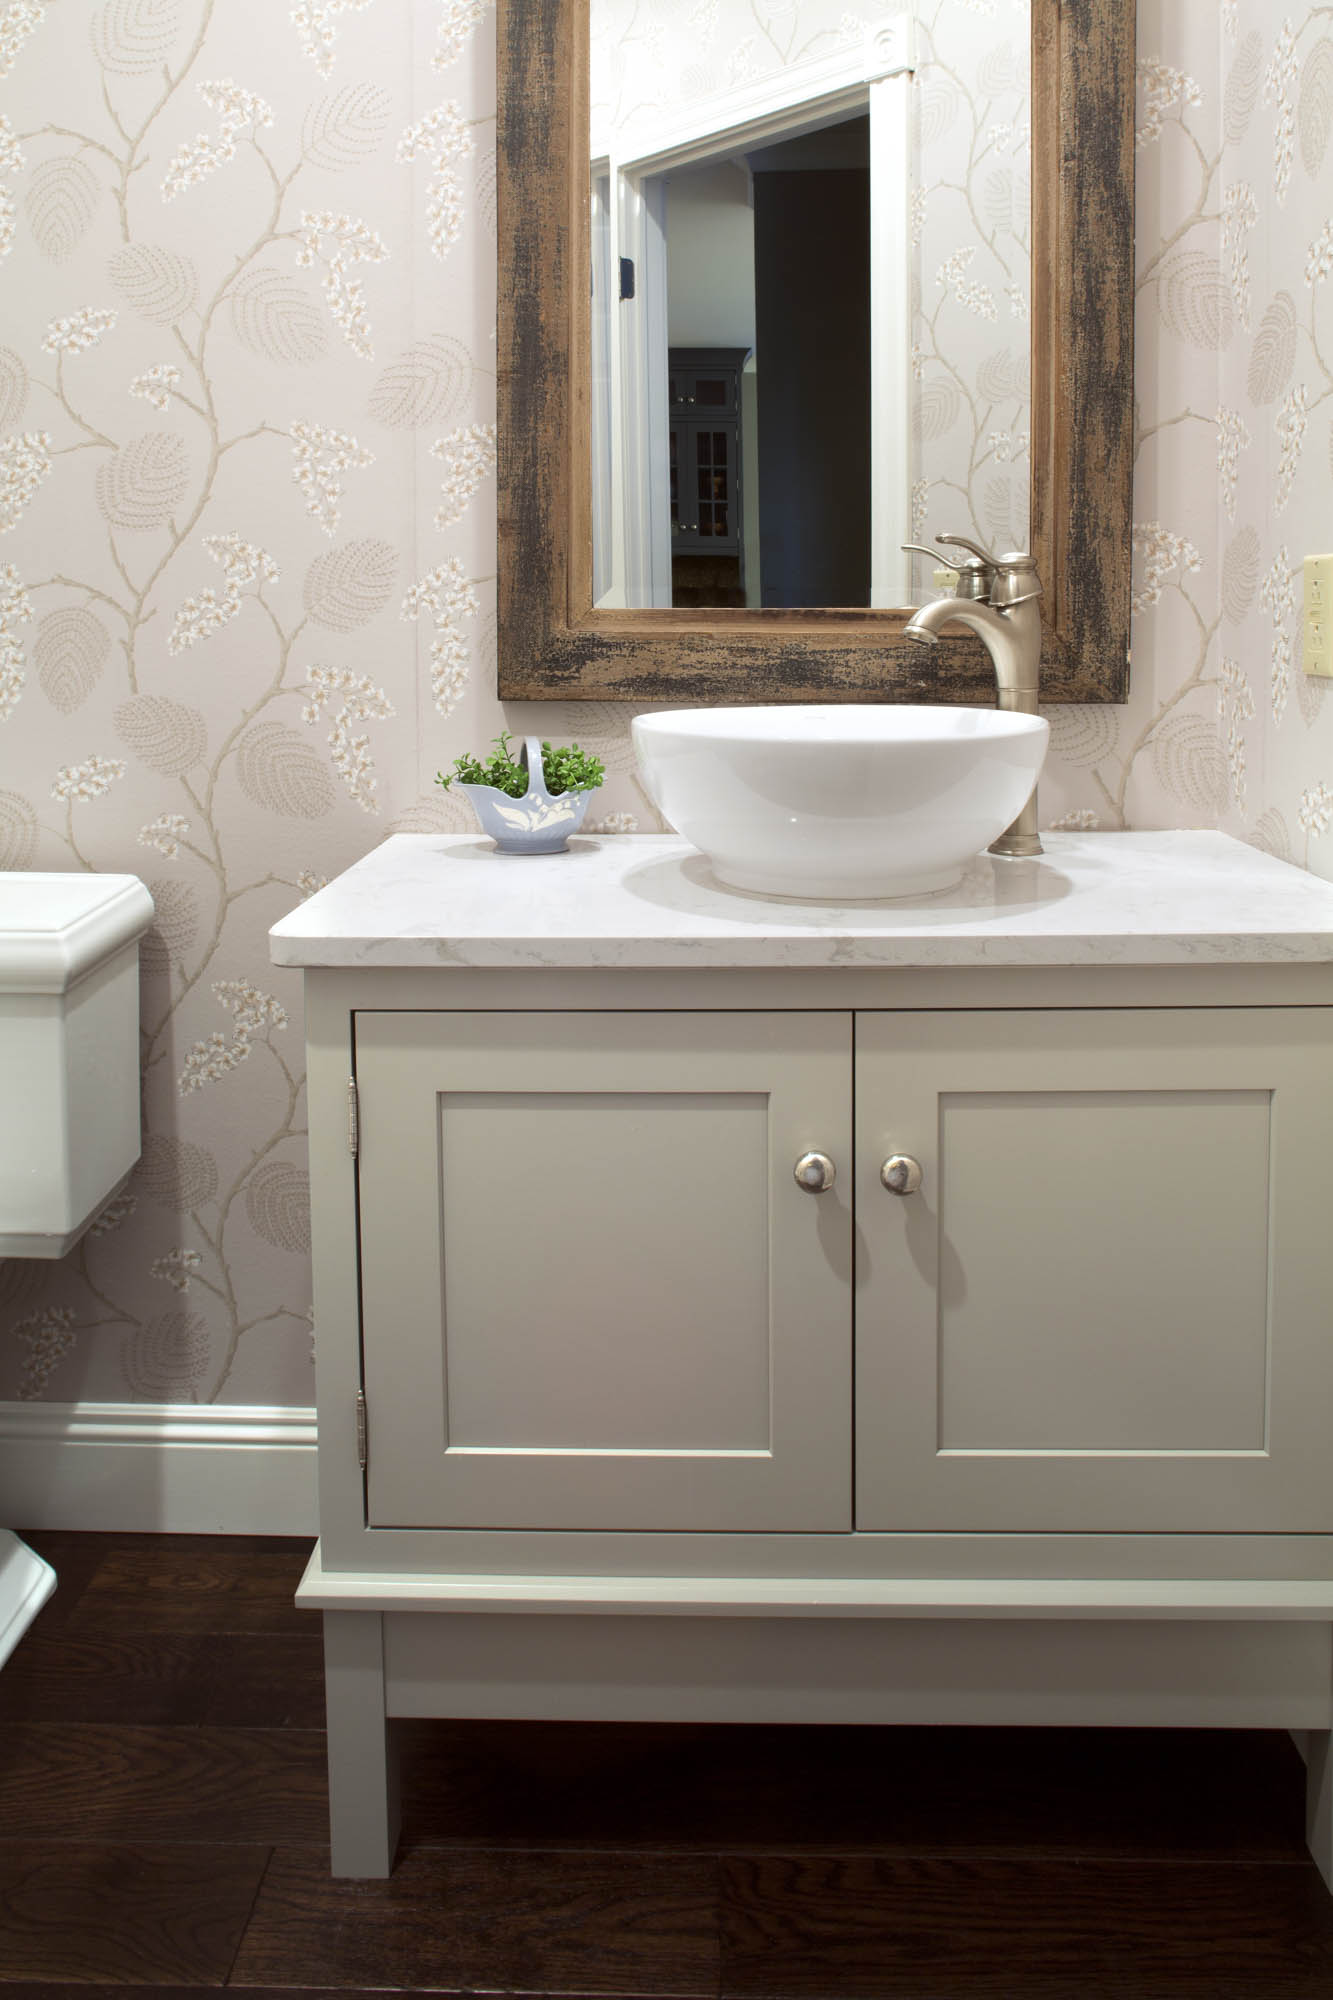 Painted powder room vanity in Dorian Gray by Showplace Cabinetry